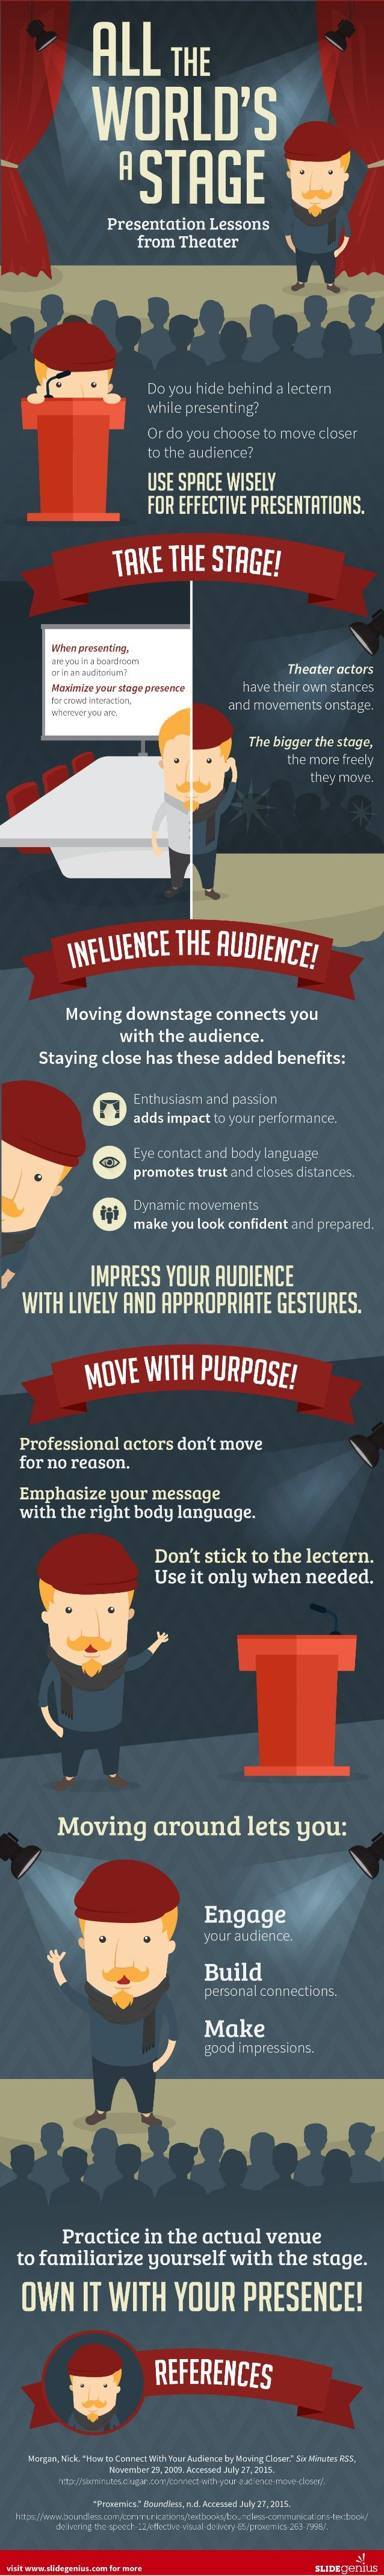 All The World's A Stage: Presentation Lessons From Theater - #infographic